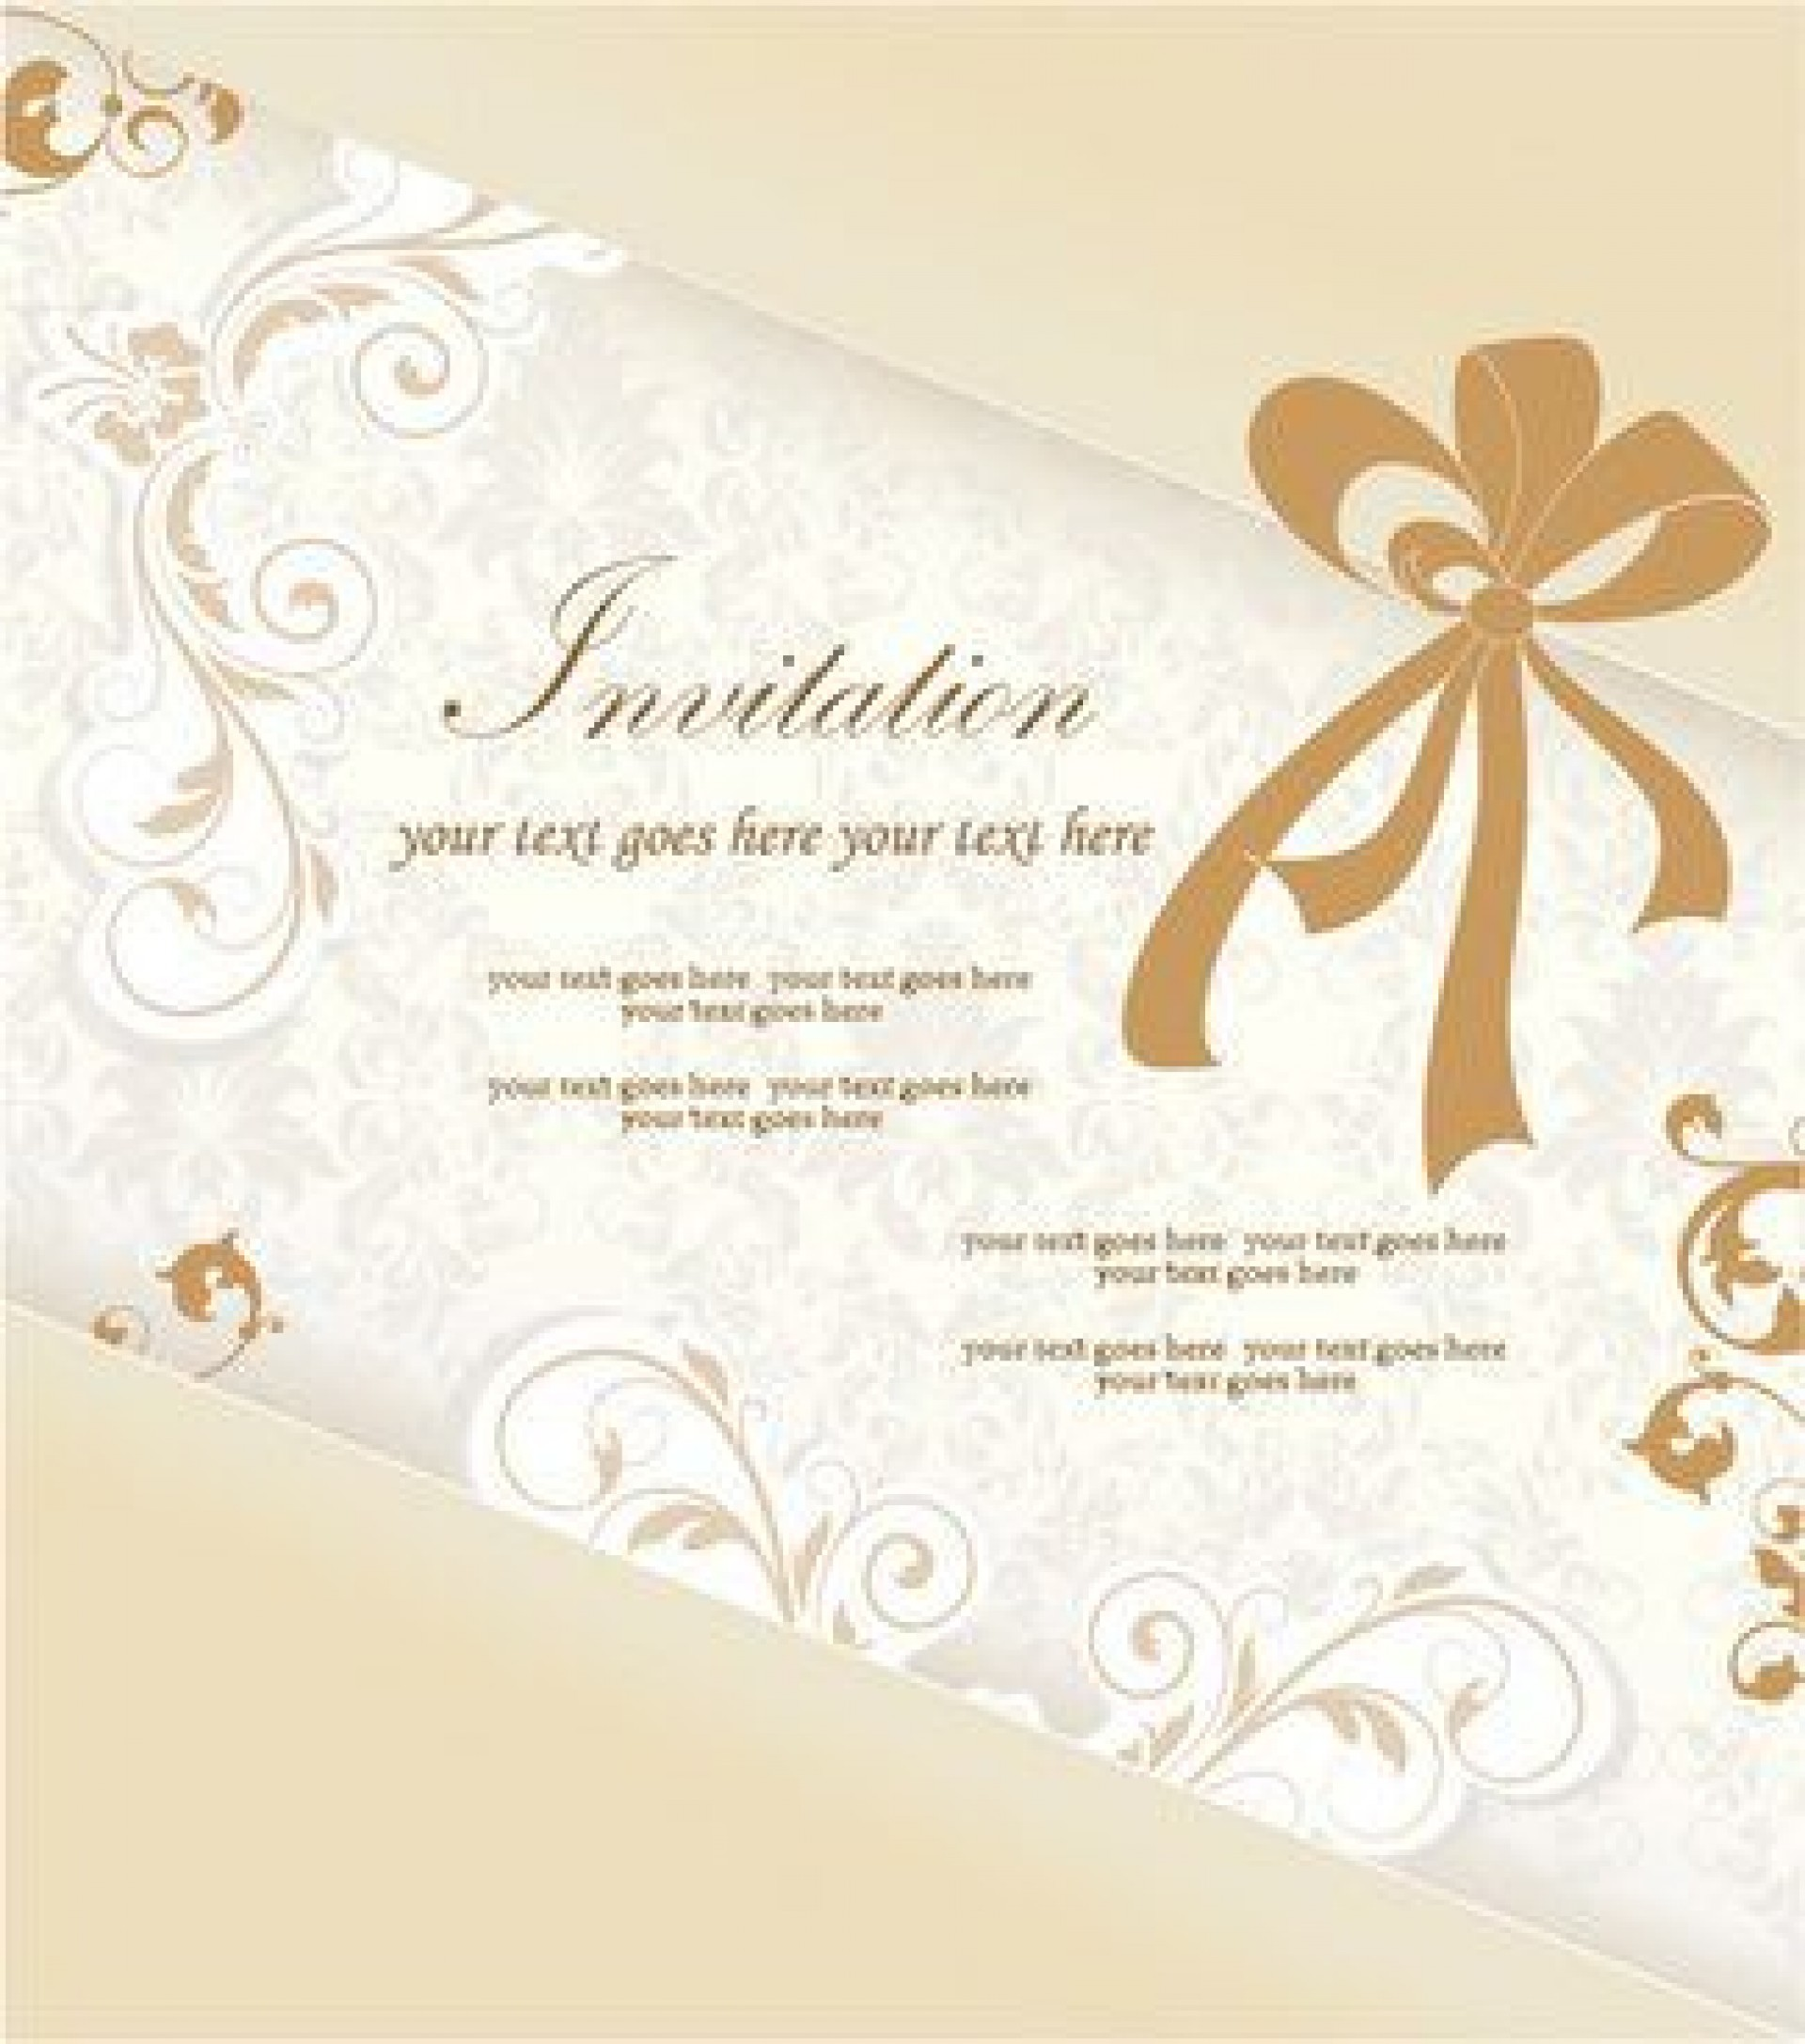 008 Astounding Free Download Invitation Card Design Concept  Birthday Party Blank Wedding Template Software1920